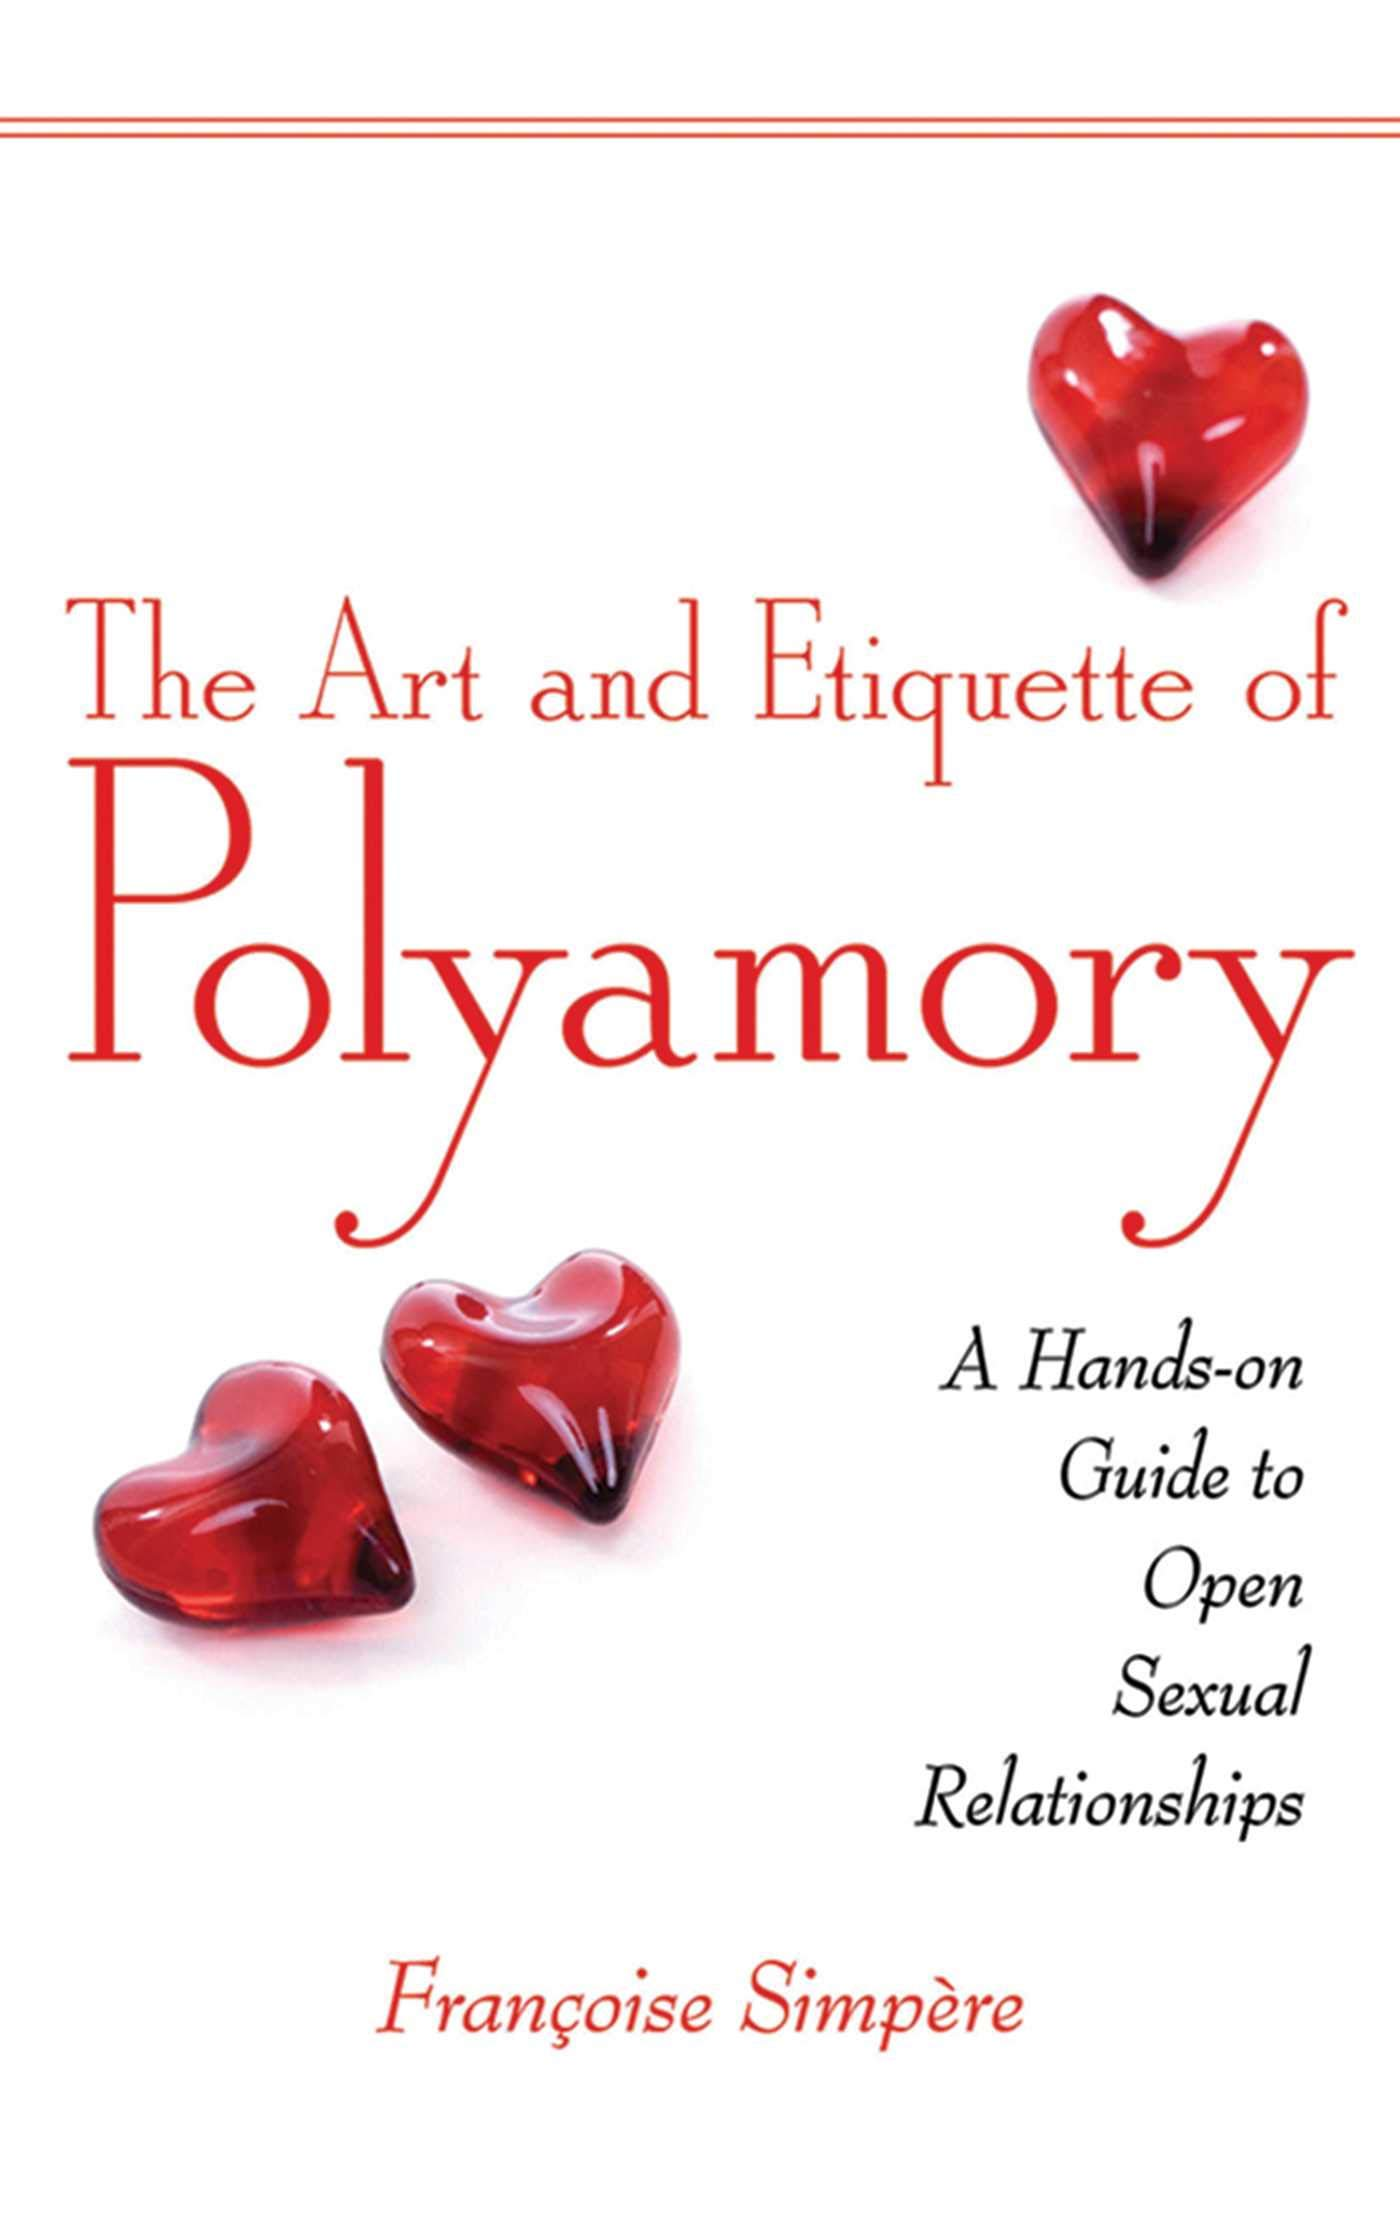 The Art and Etiquette of Polyamory: A Hands-on Guide to Open